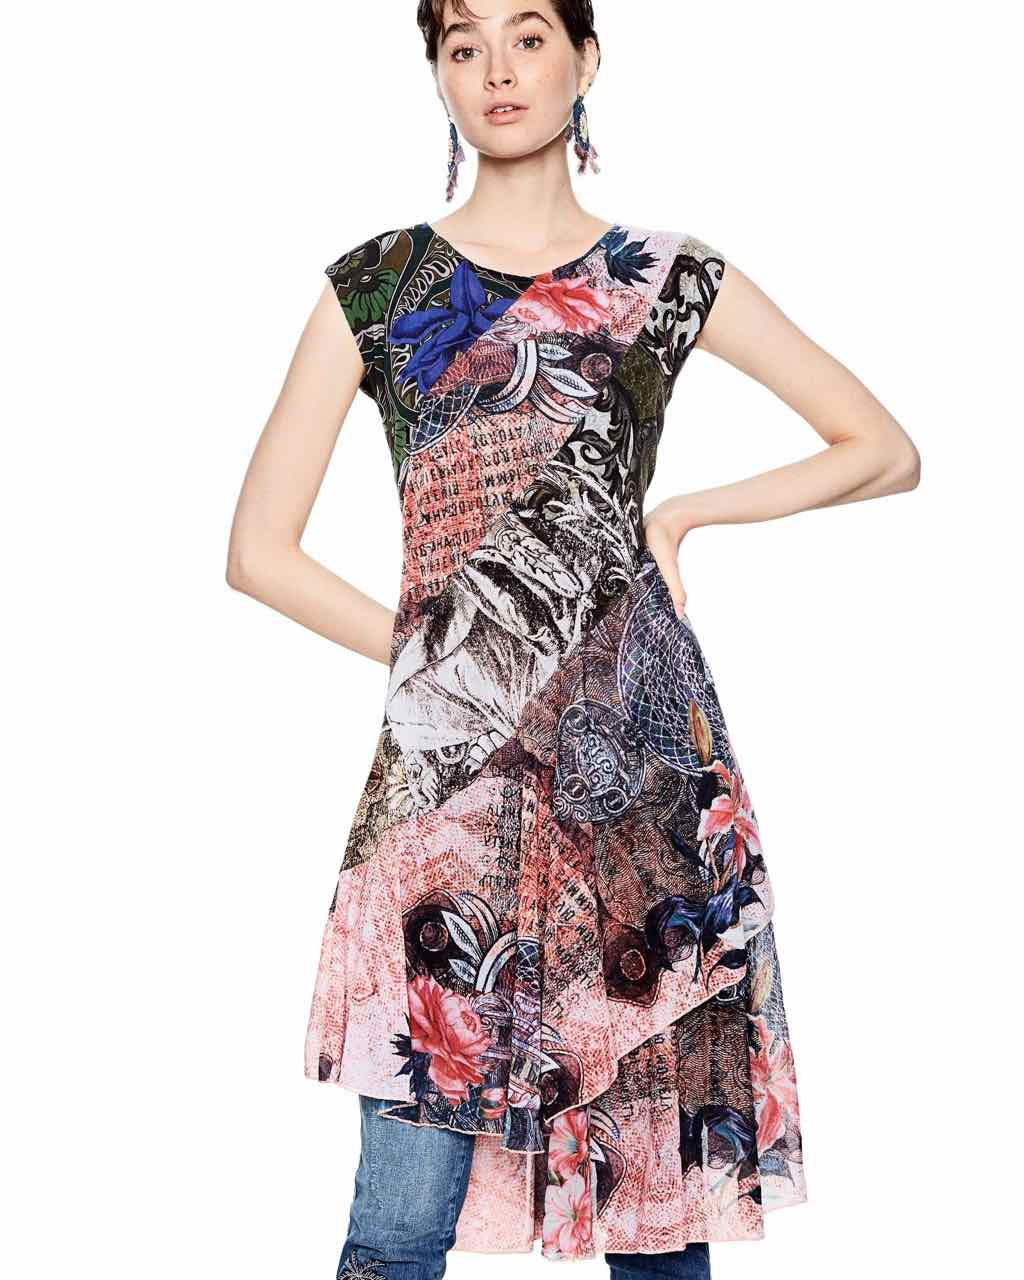 desigual dress my sweetheart fun fashion online boutique. Black Bedroom Furniture Sets. Home Design Ideas